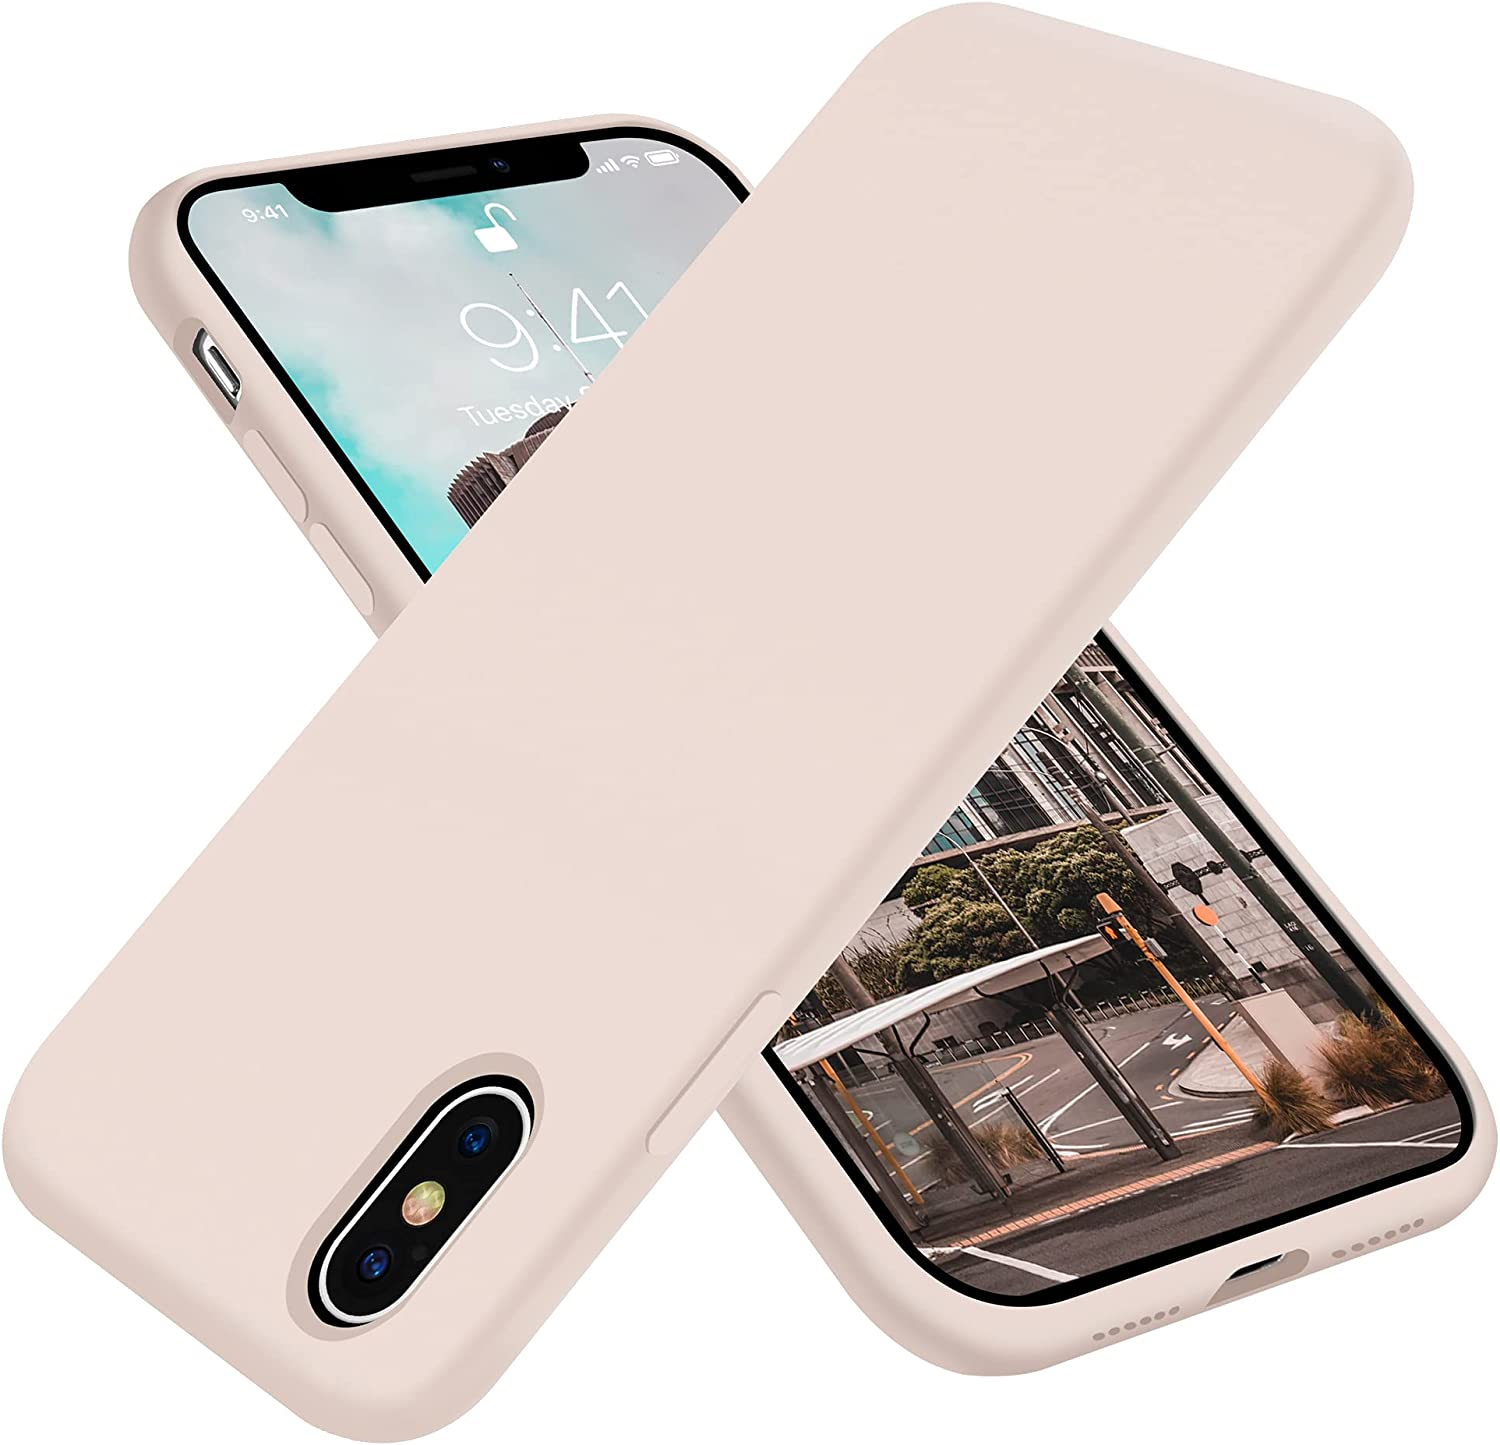 OTOFLY Designed for iPhone X Case,for iPhone Xs Case,[Silky and Soft Touch Series] Premium Soft Liquid Silicone Rubber Full-Body Protective Bumper Case for iPhone X&Xs 5.8 inch,Light Pink